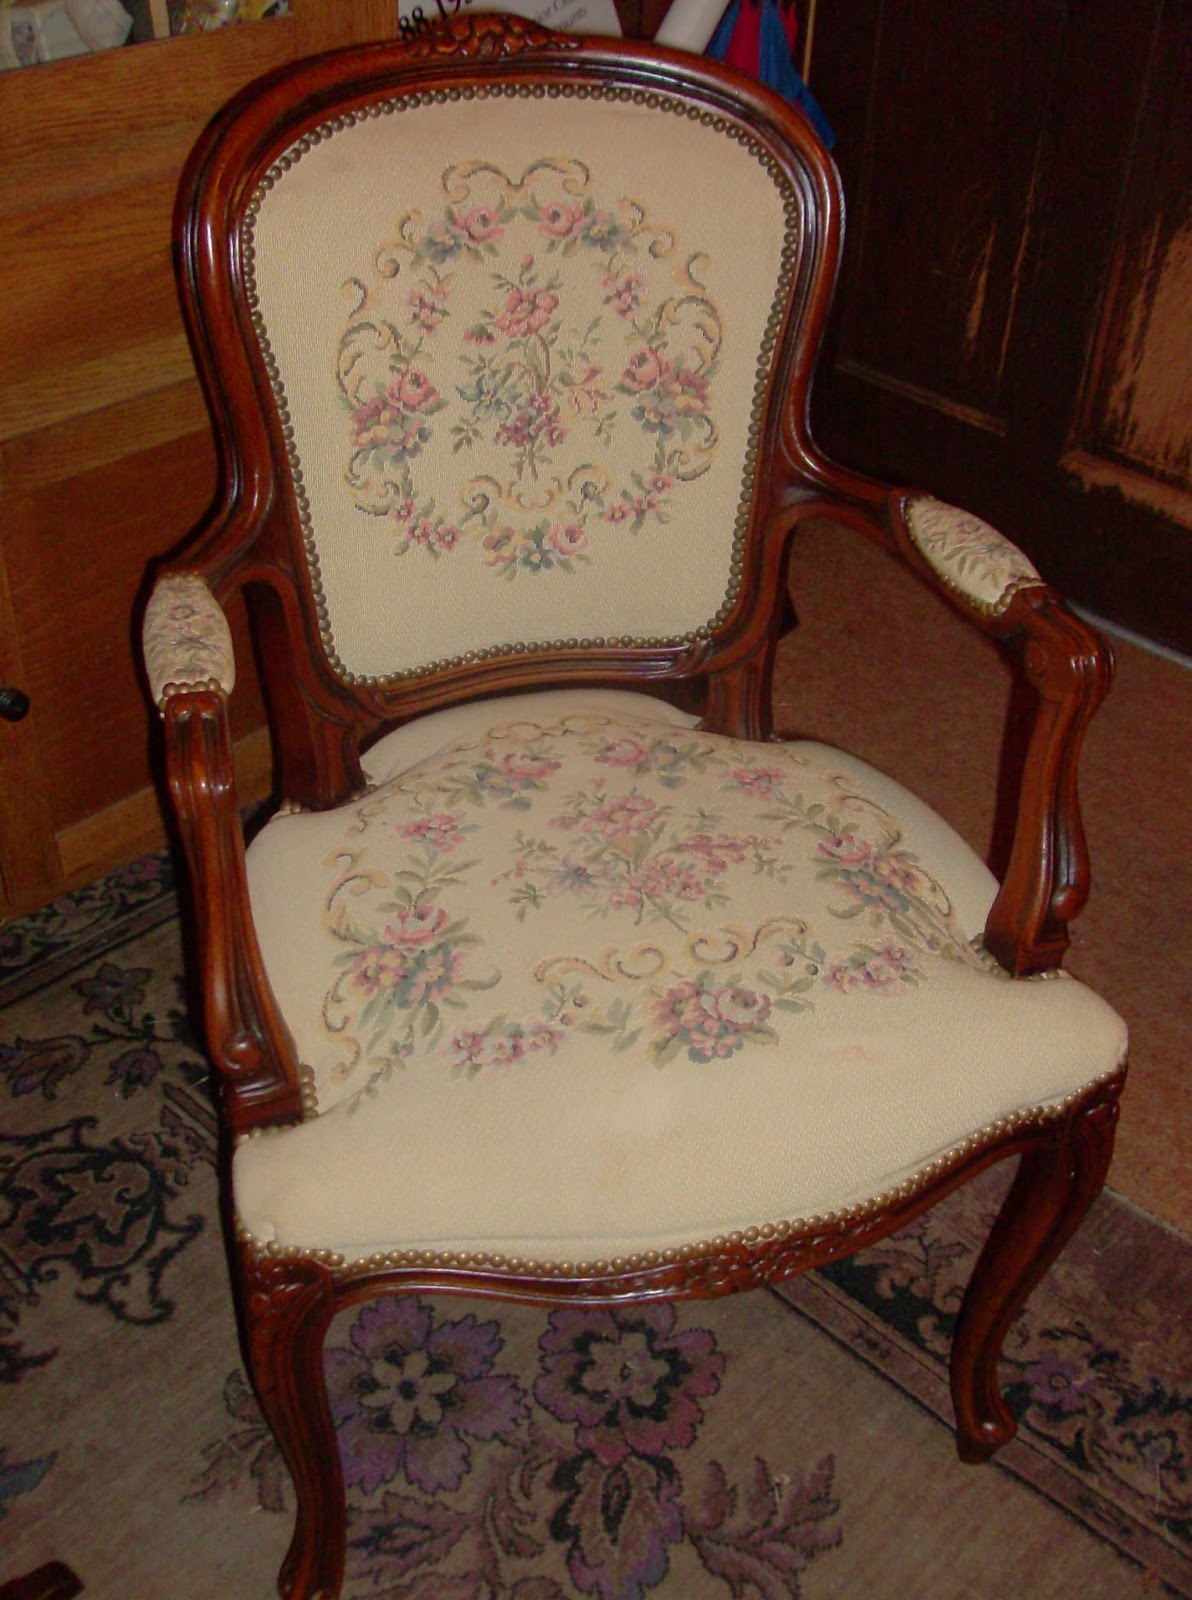 Queen anne chair history - Labels Antique Mall Antique Stores Columbus Ga Mahogany Resale Thrift Mall Thrift Stores Used Furniture Vintage